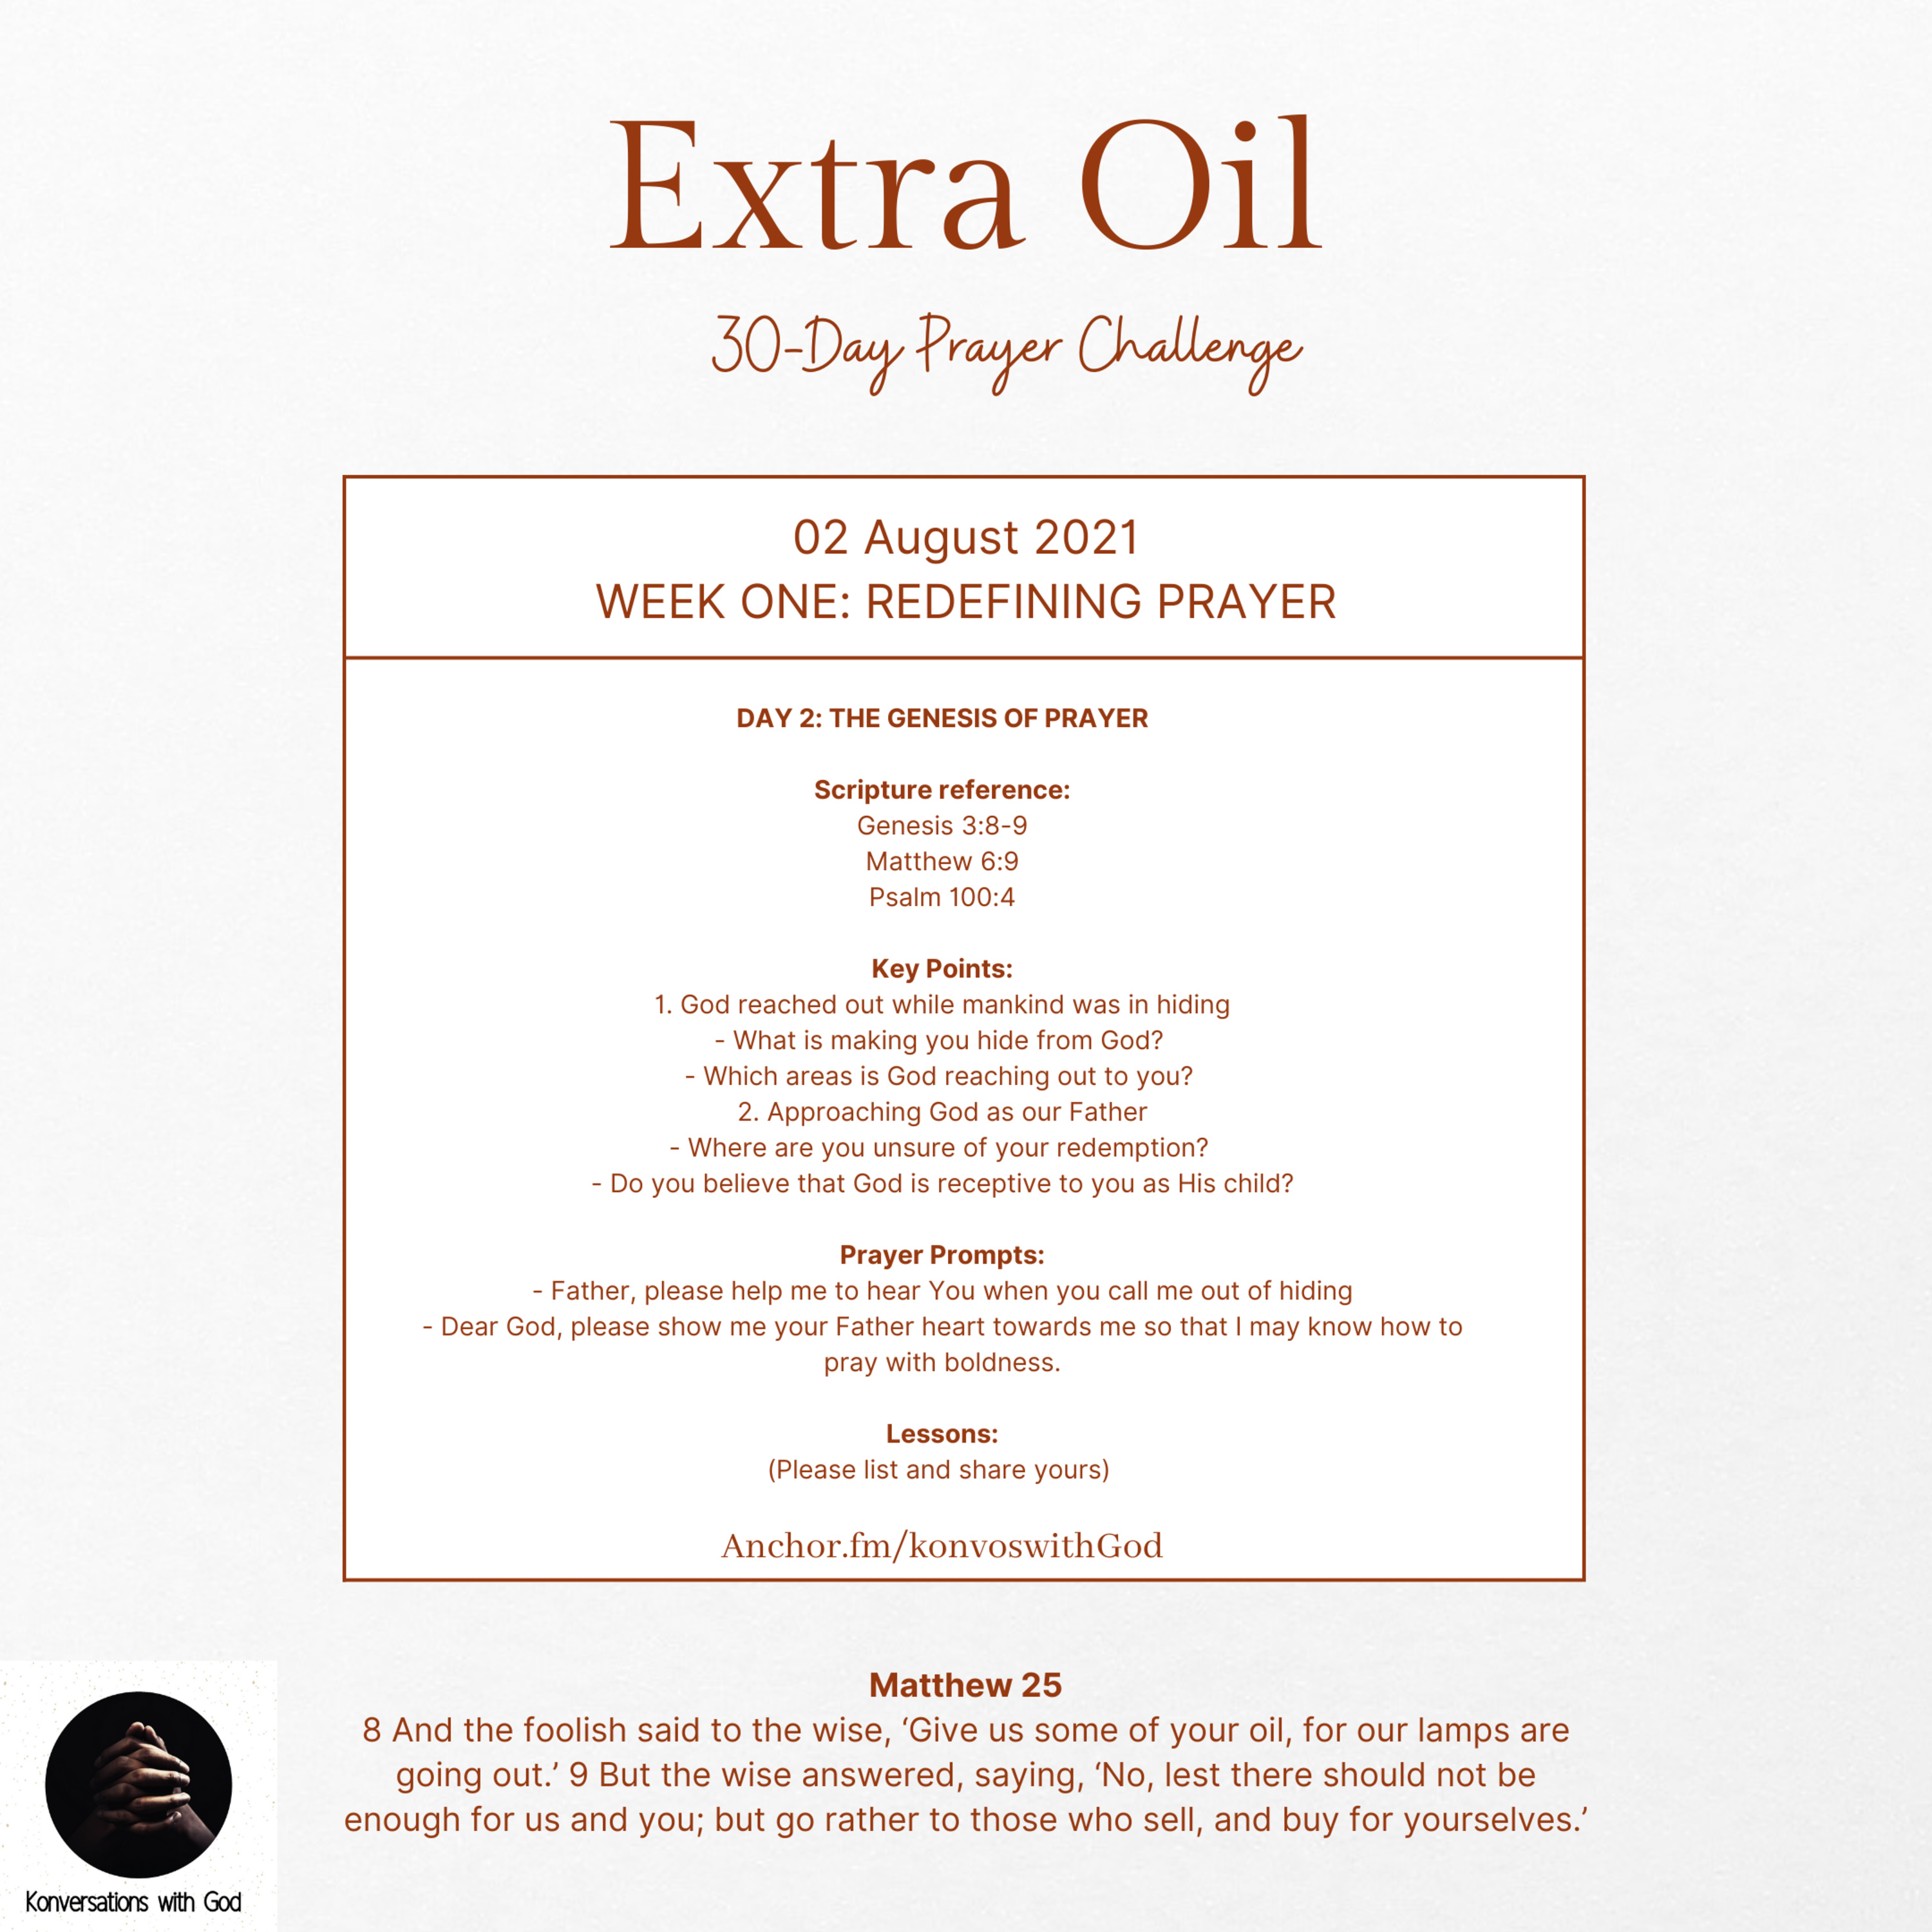 Extra Oil Day 2: The Genesis of Prayer